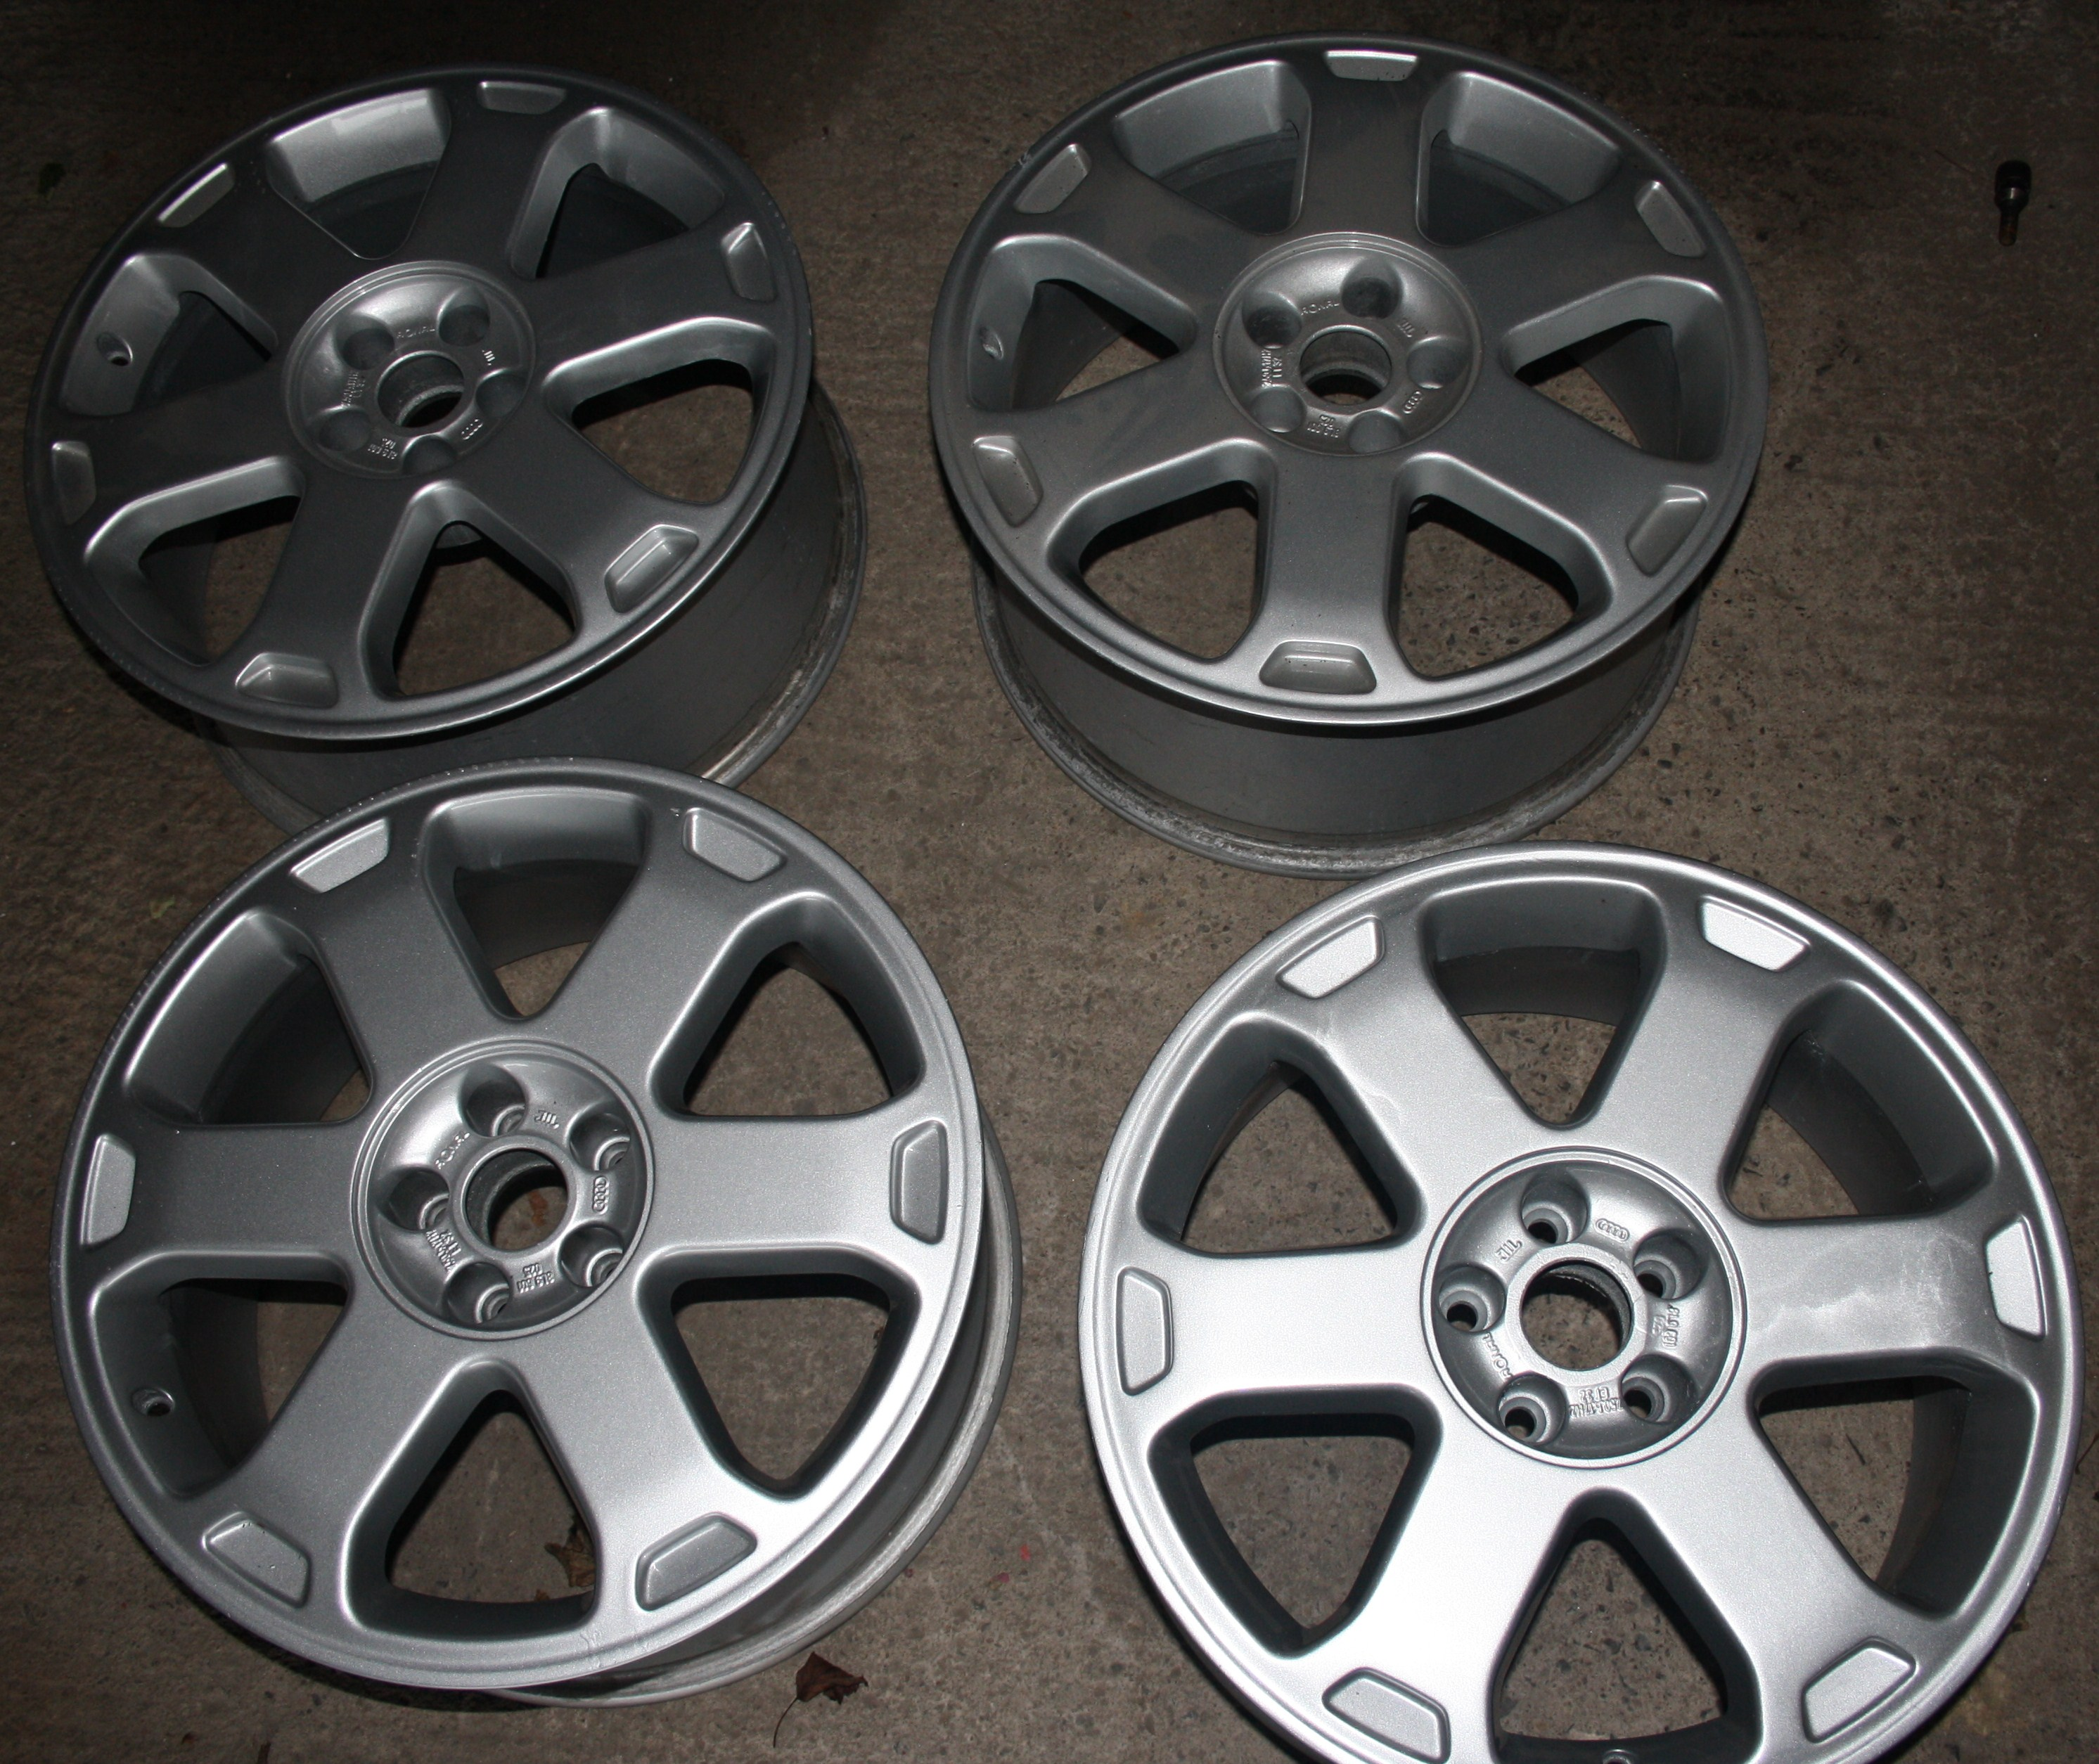 Photos of Audi Alloy Wheels For Sale